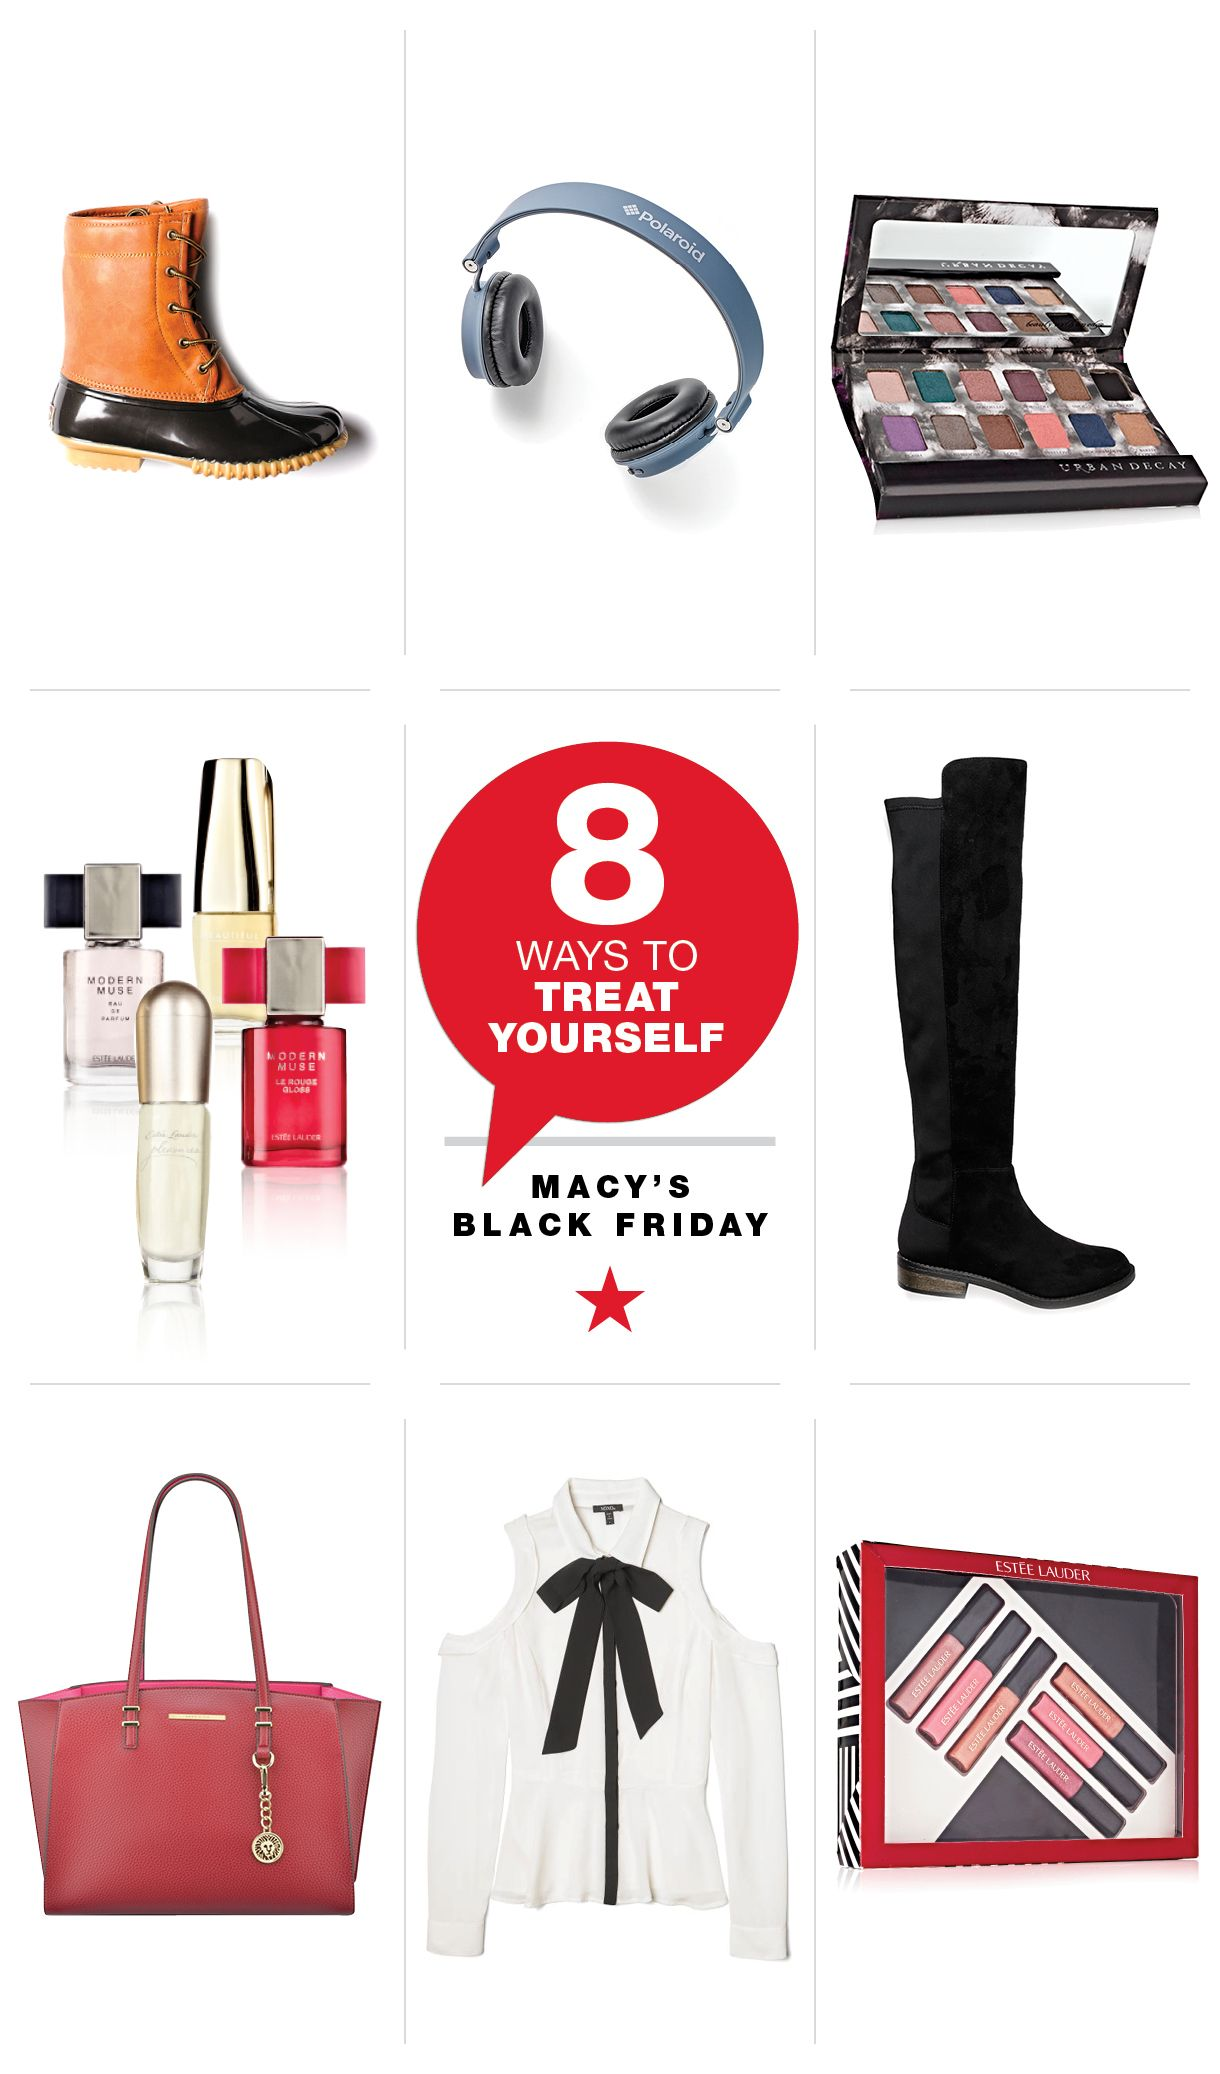 Macy S Black Friday Preview Are You Waking Up Early On Black Friday You Deserve To Treat Yourself Enjoy 60 Off Pola Black Friday Black Friday Preview Black